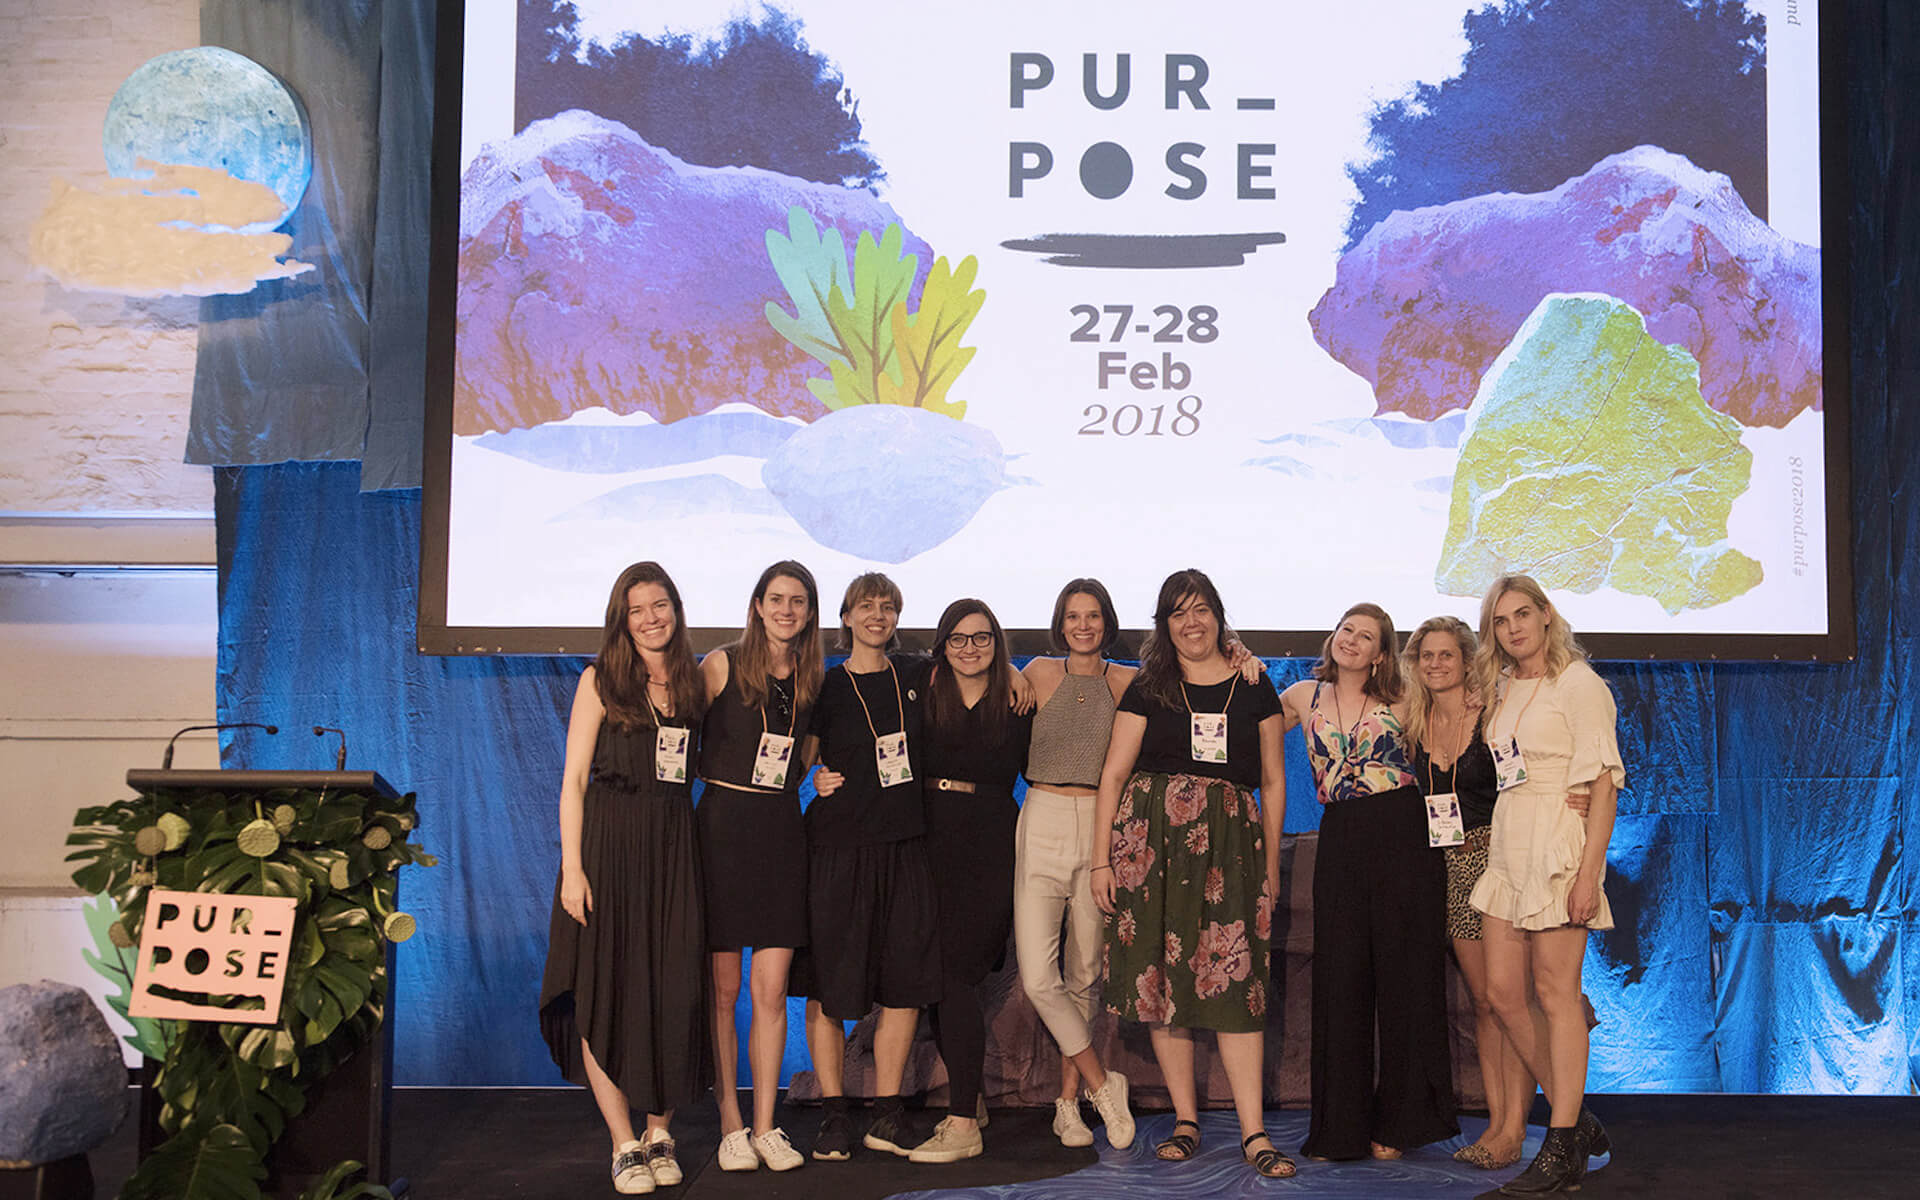 The Wildwon team on the Purpose 2018 stage.